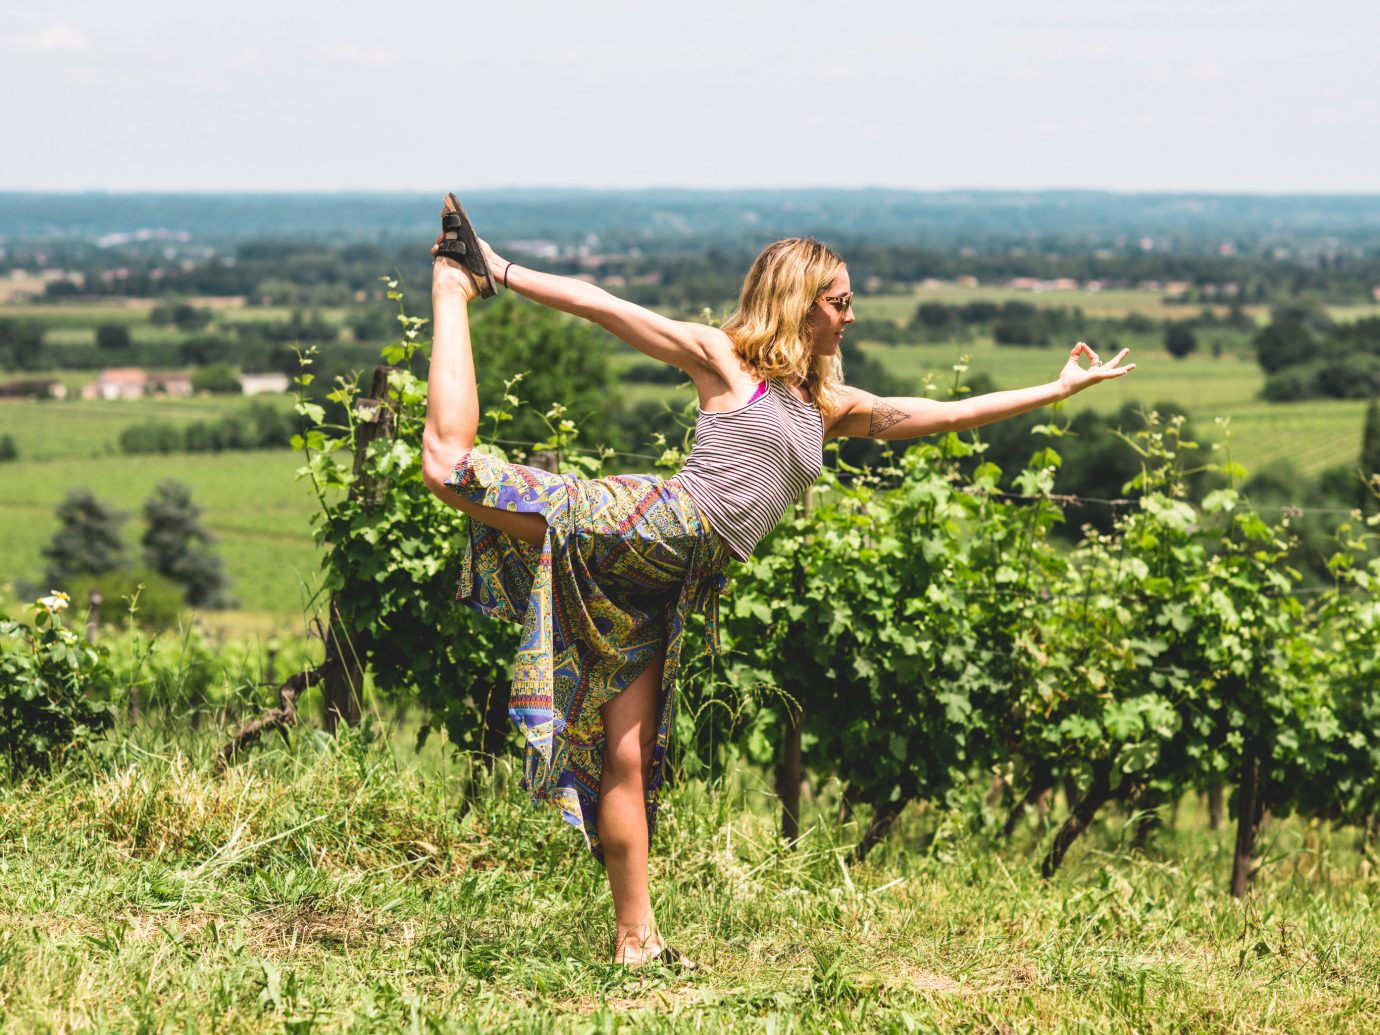 Health + Wellness Meditation Retreats Trip Ideas Yoga Retreats grass outdoor field agriculture meadow sports physical fitness green lawn flower jumping lush